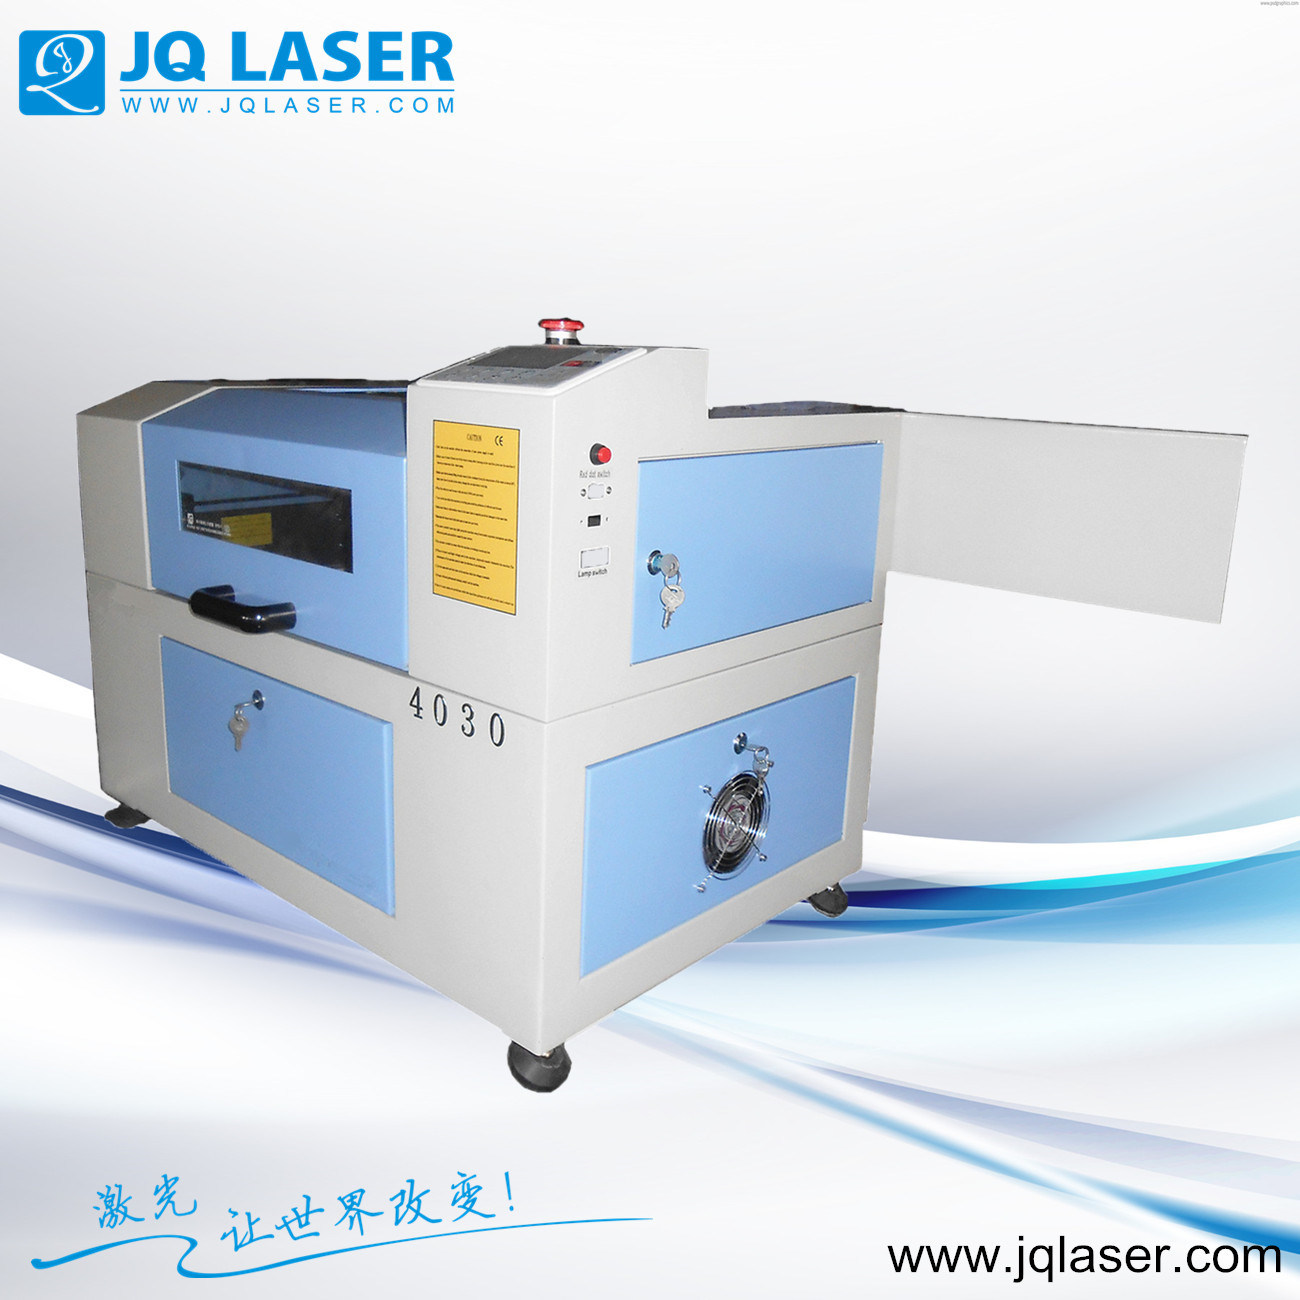 Small Cutter Mini Engraver Laser Engraving Machine